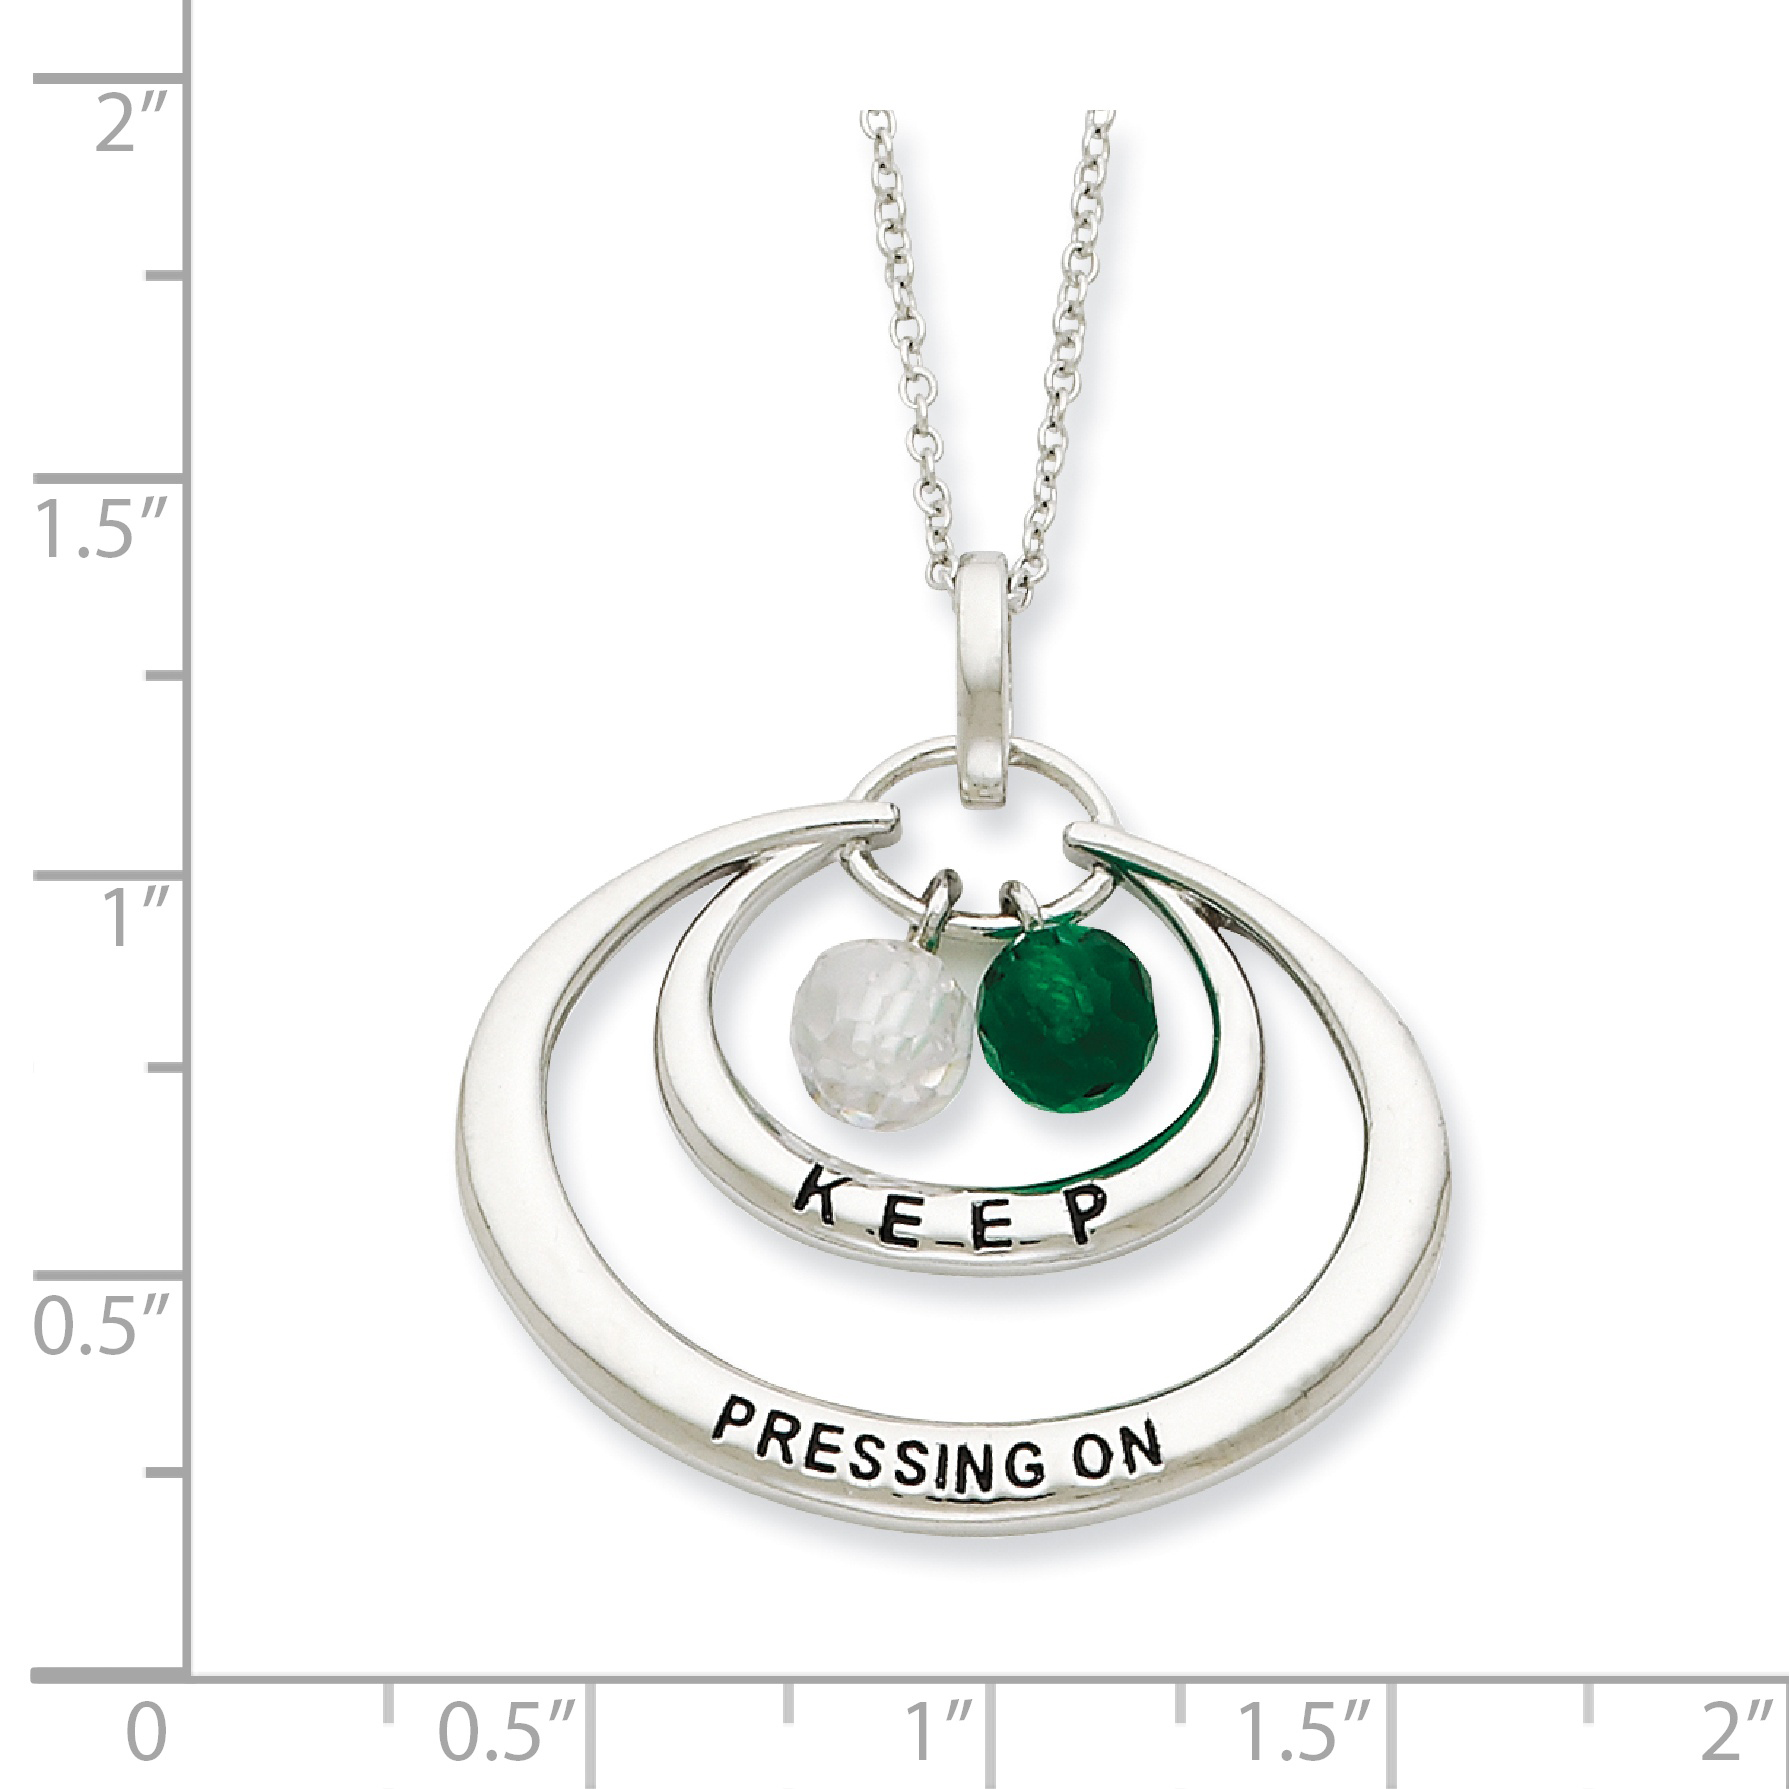 925 Sterling Silver Cubic Zirconia Cz Keep Pressing On 18 Inch Chain Necklace Pendant Charm Inspirational Fine Jewelry Gifts For Women For Her - image 1 de 3